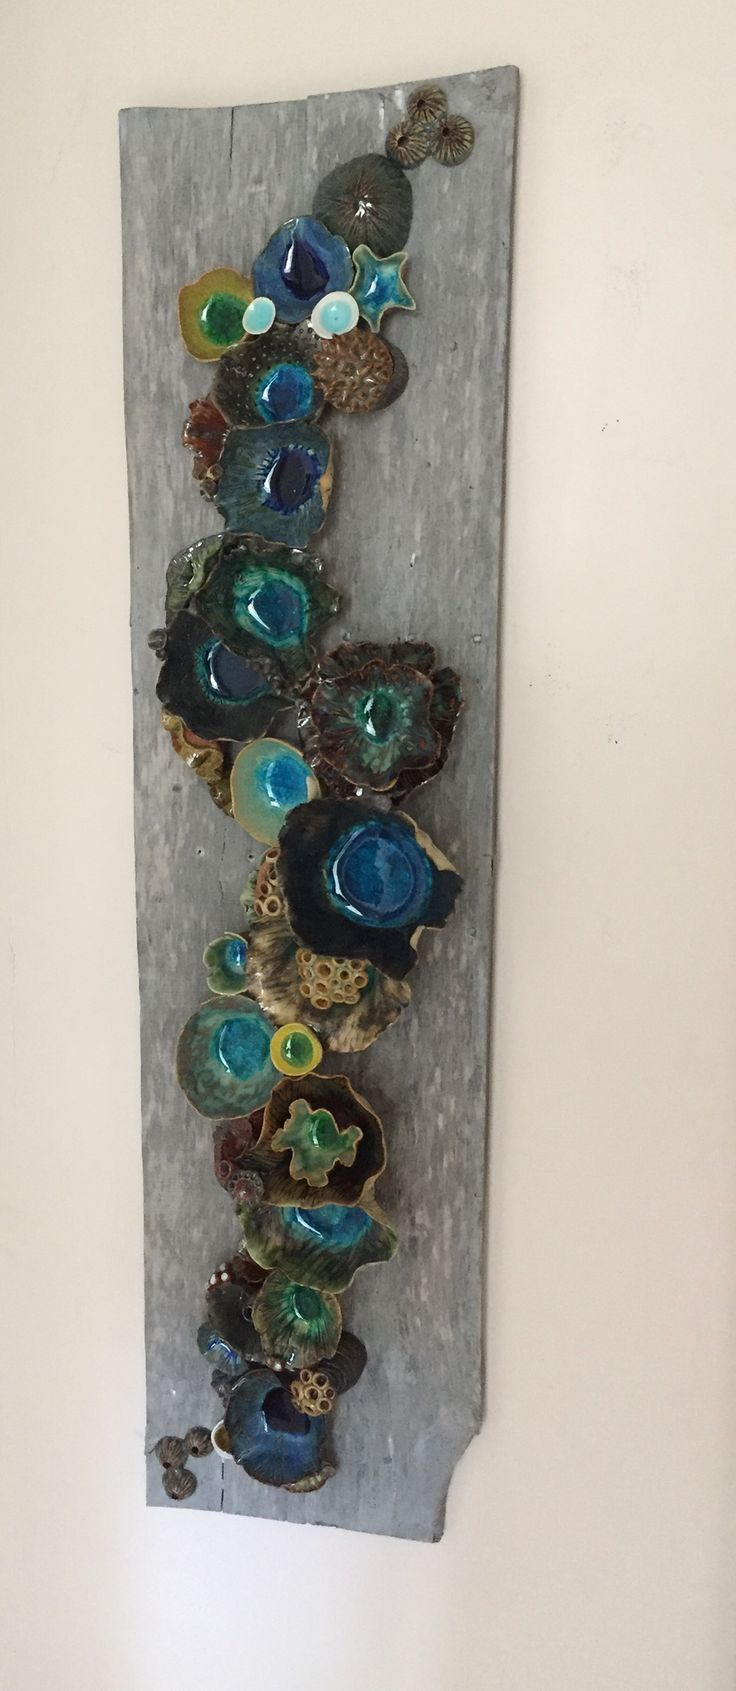 """Wall ceramic sculpture depicting corals and barnacles. Size: 40"""" x 12"""". Reclaimed Wood Wall Art; Ceramic Coral Reef Wall Application; Ocean Reef; Underwater Coral Reef Pieces are handmade individually"""